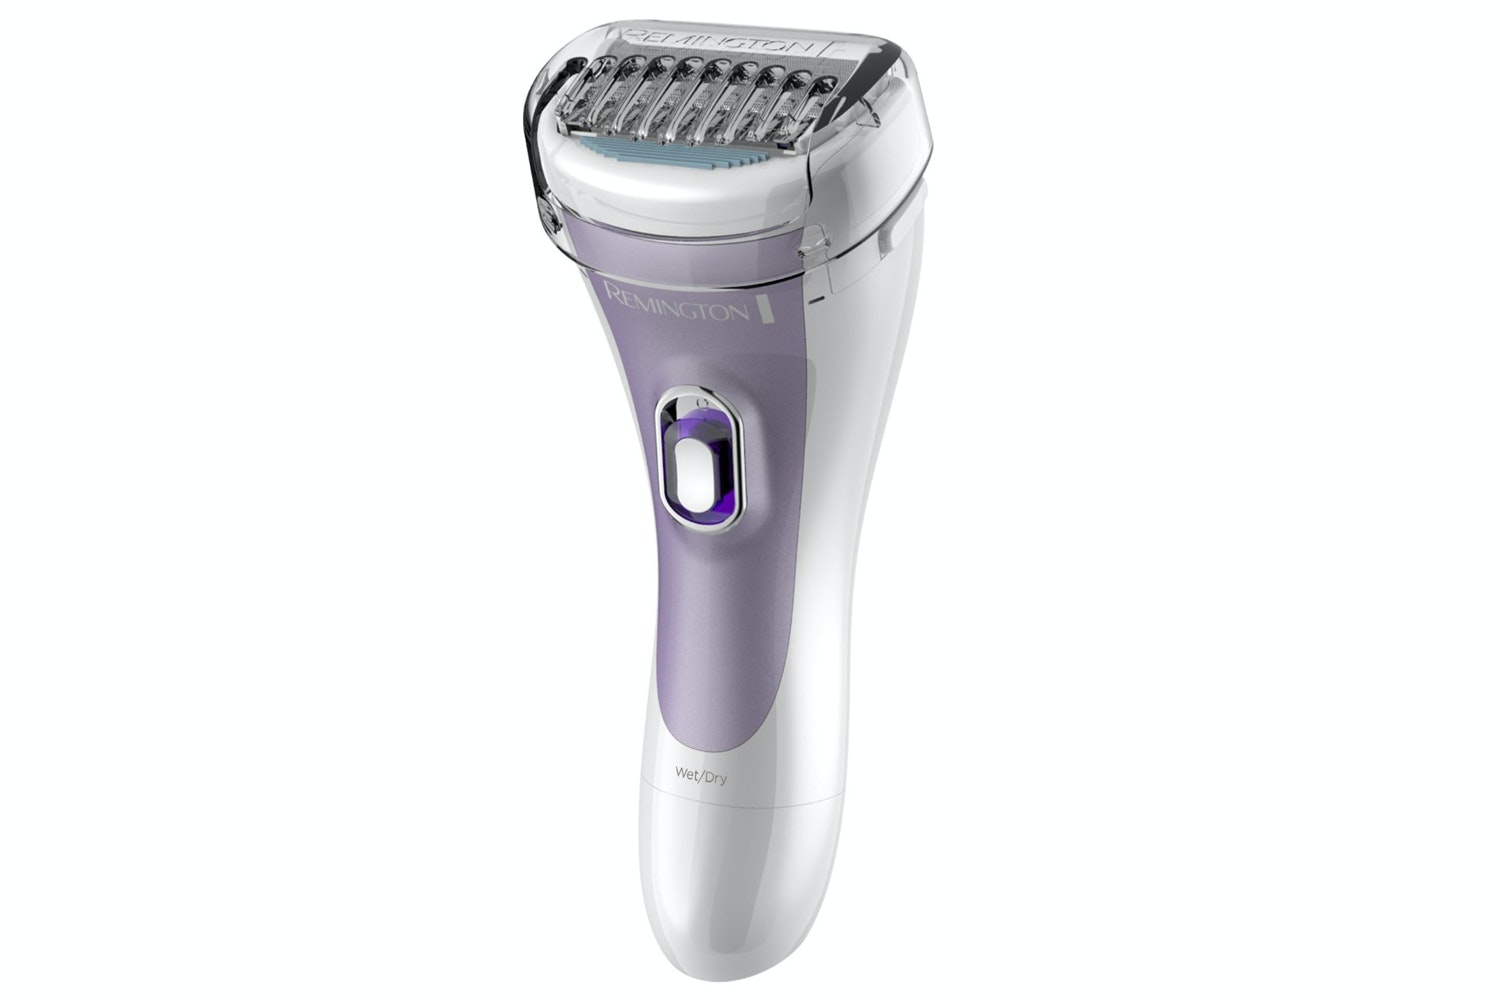 Remington Cordless Lady Shaver | WDF4840